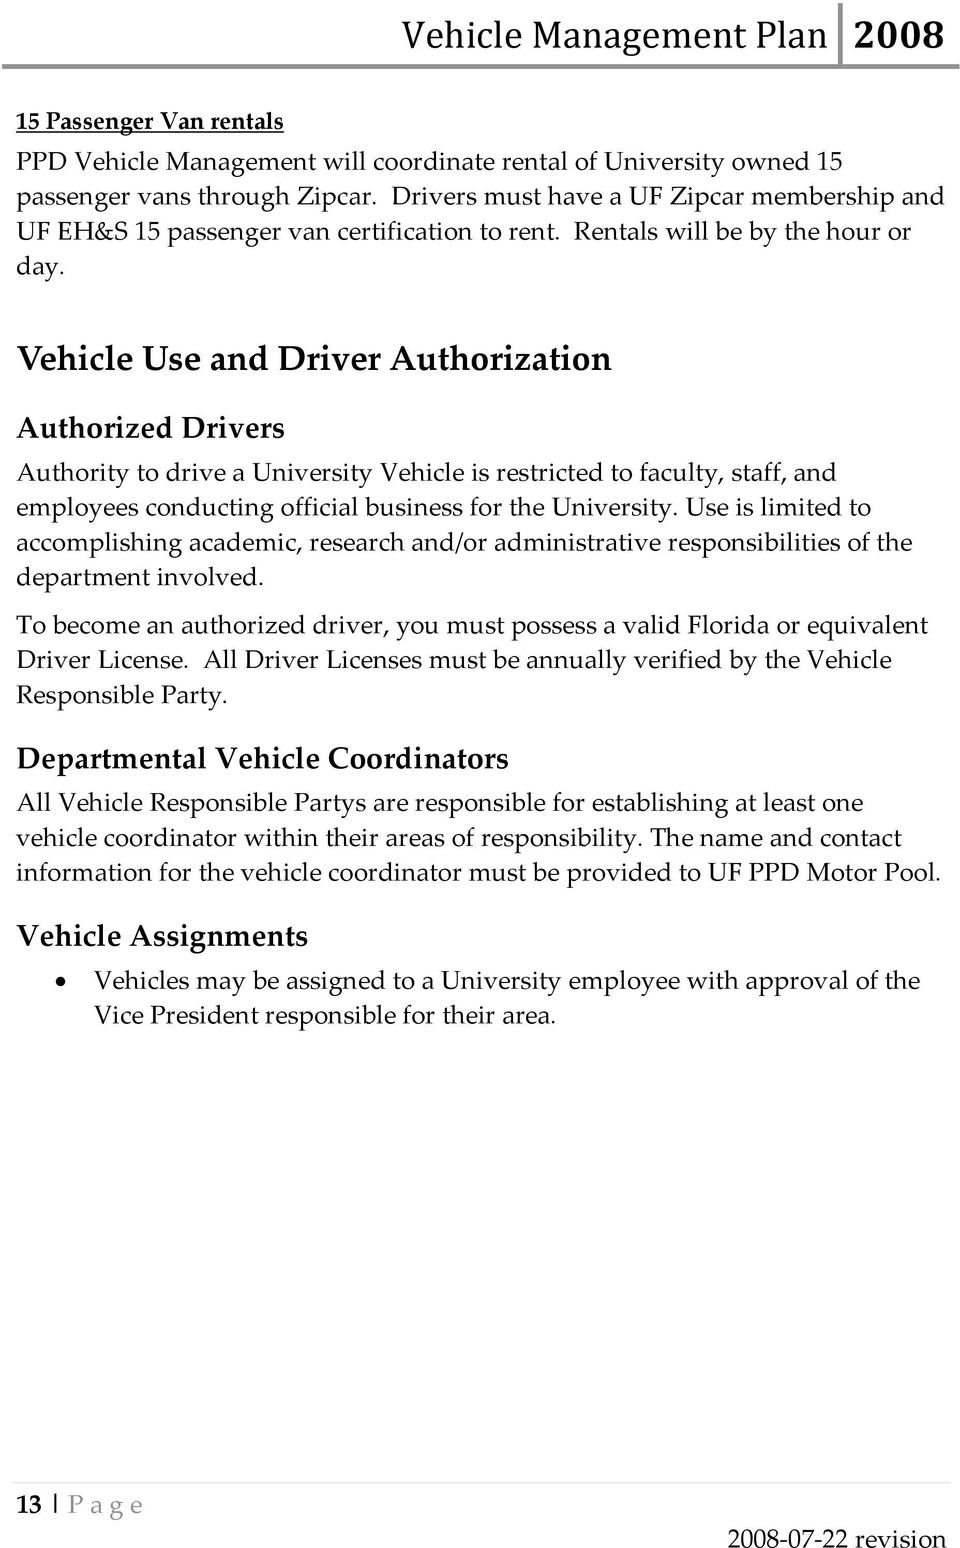 Vehicle Use and Driver Authorization Authorized Drivers Authority to drive a University Vehicle is restricted to faculty, staff, and employees conducting official business for the University.